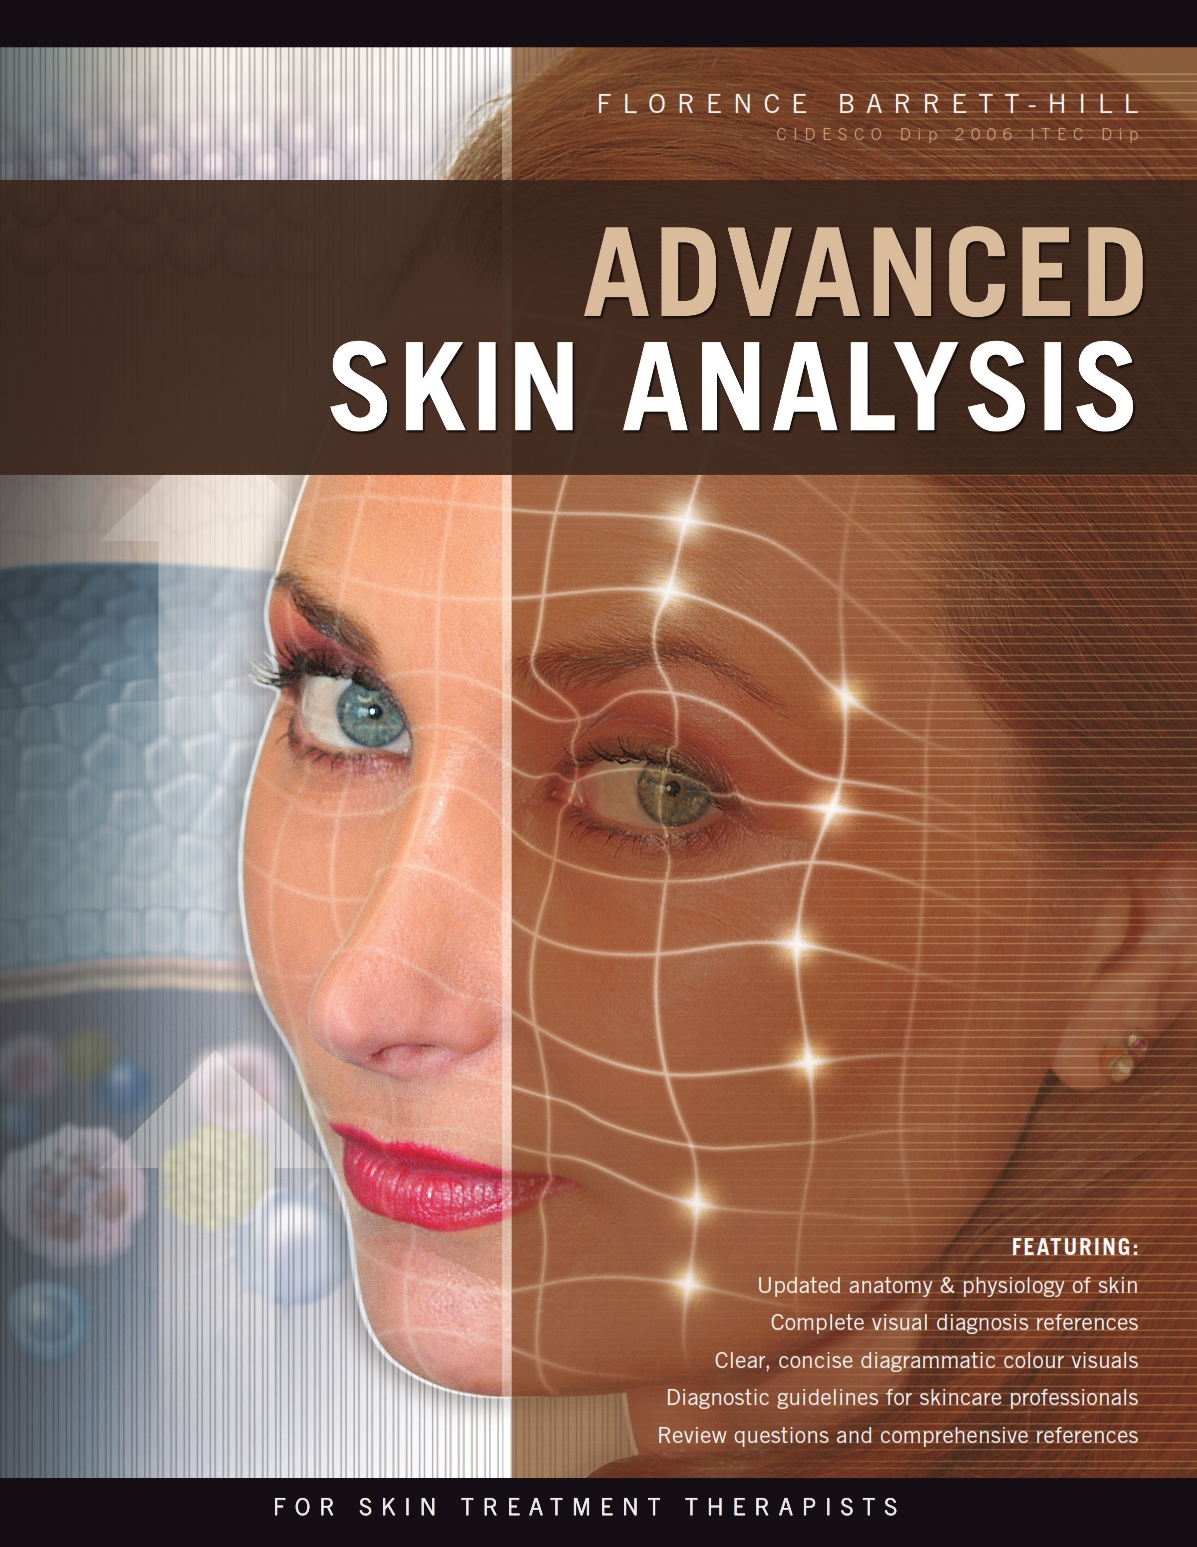 The leading skin analysis book available